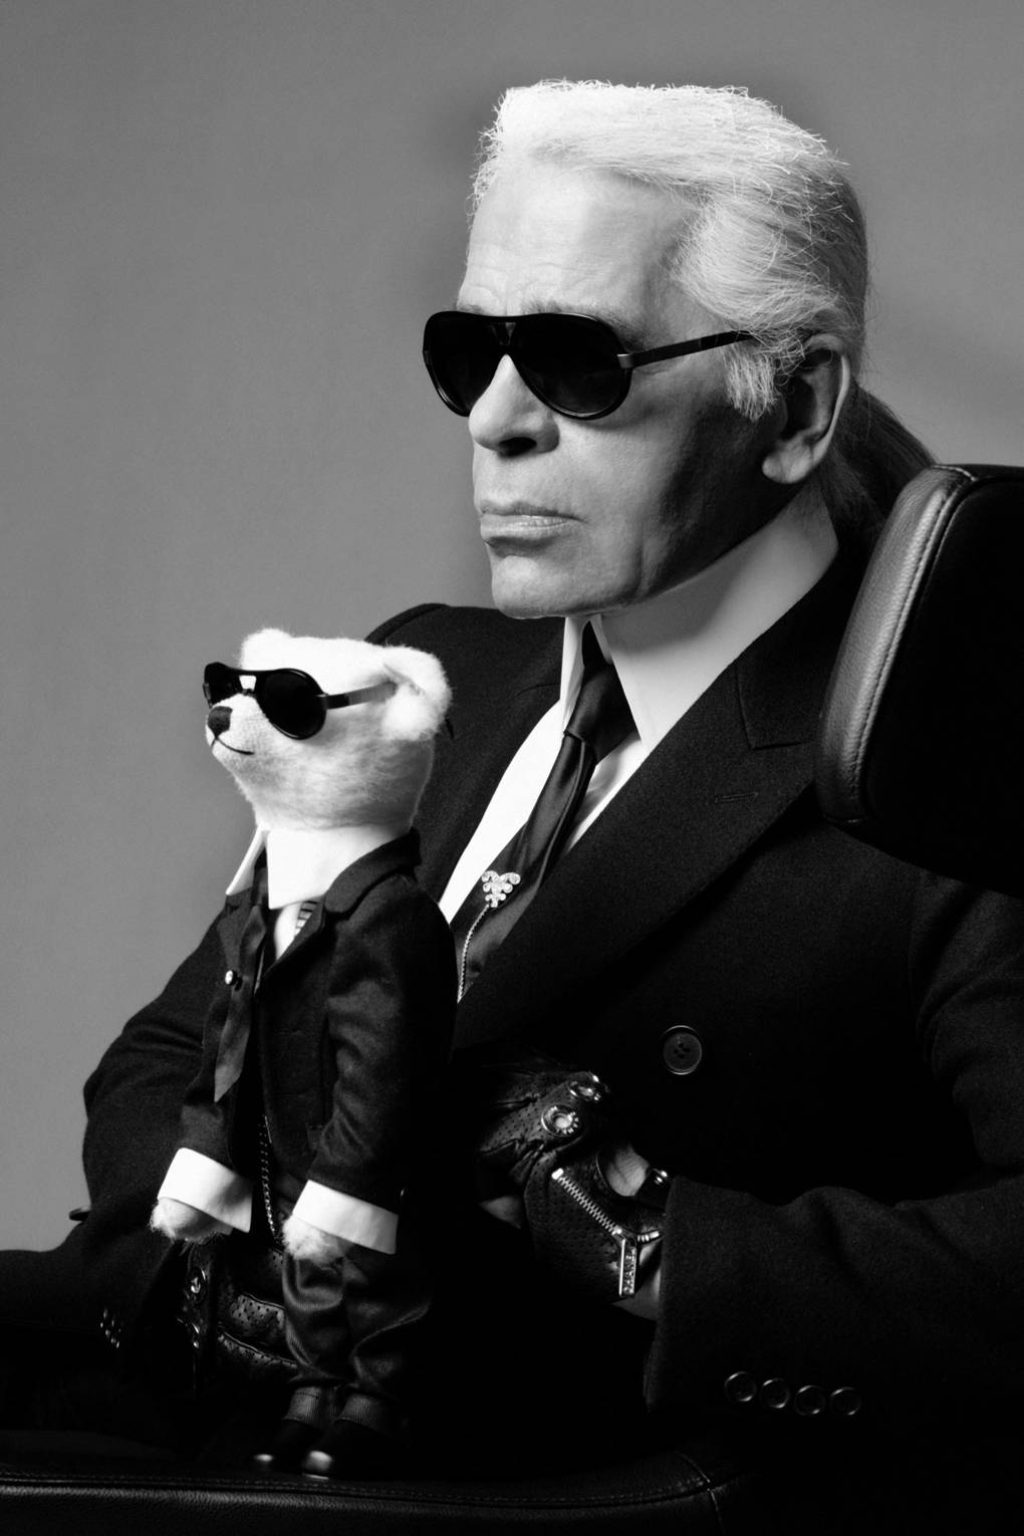 Photograph of Karl Lagerfeld Holding a Teddy Bear Wearing Matching Clothes and Sunglasses